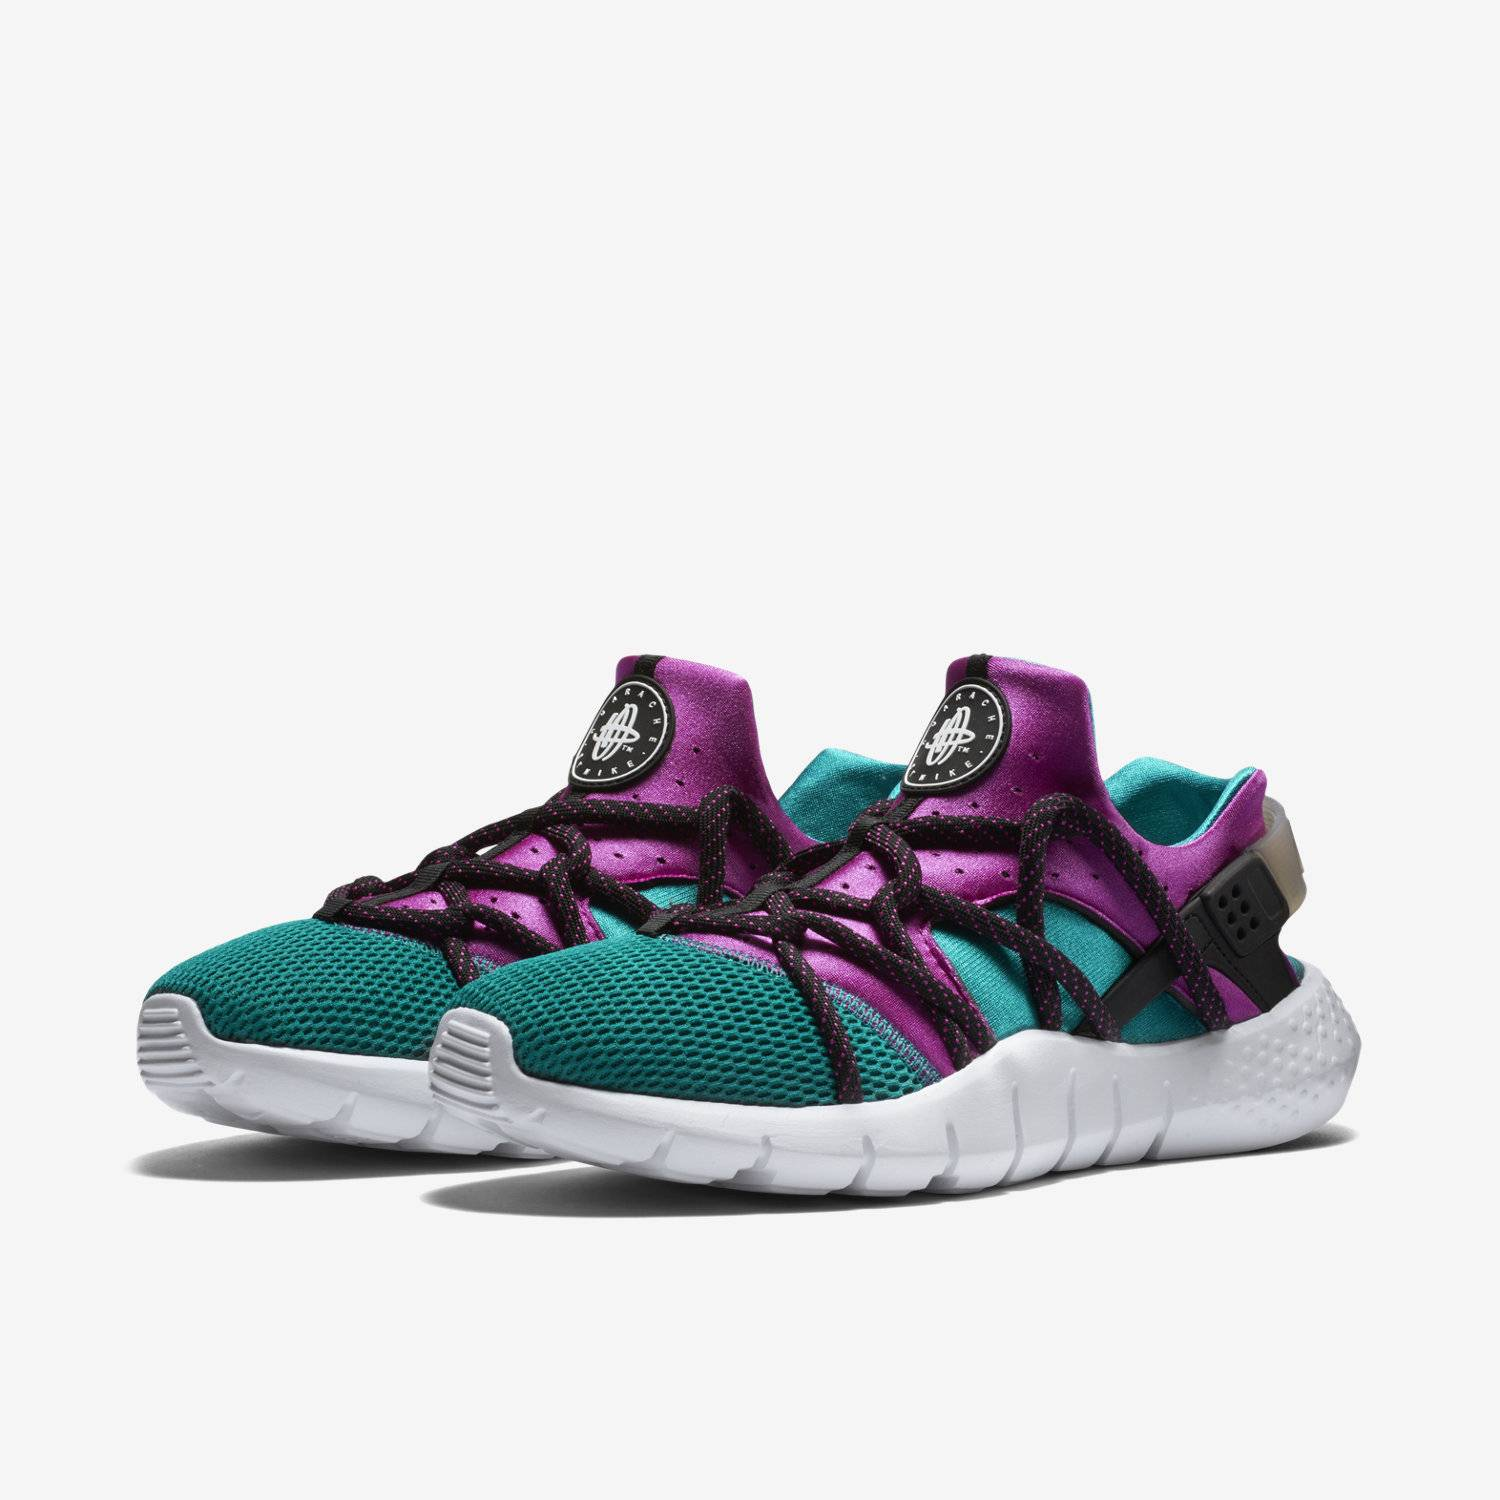 info for 19e94 b4988 ... Huarache NM - Nike - 705159 601 GOAT ...